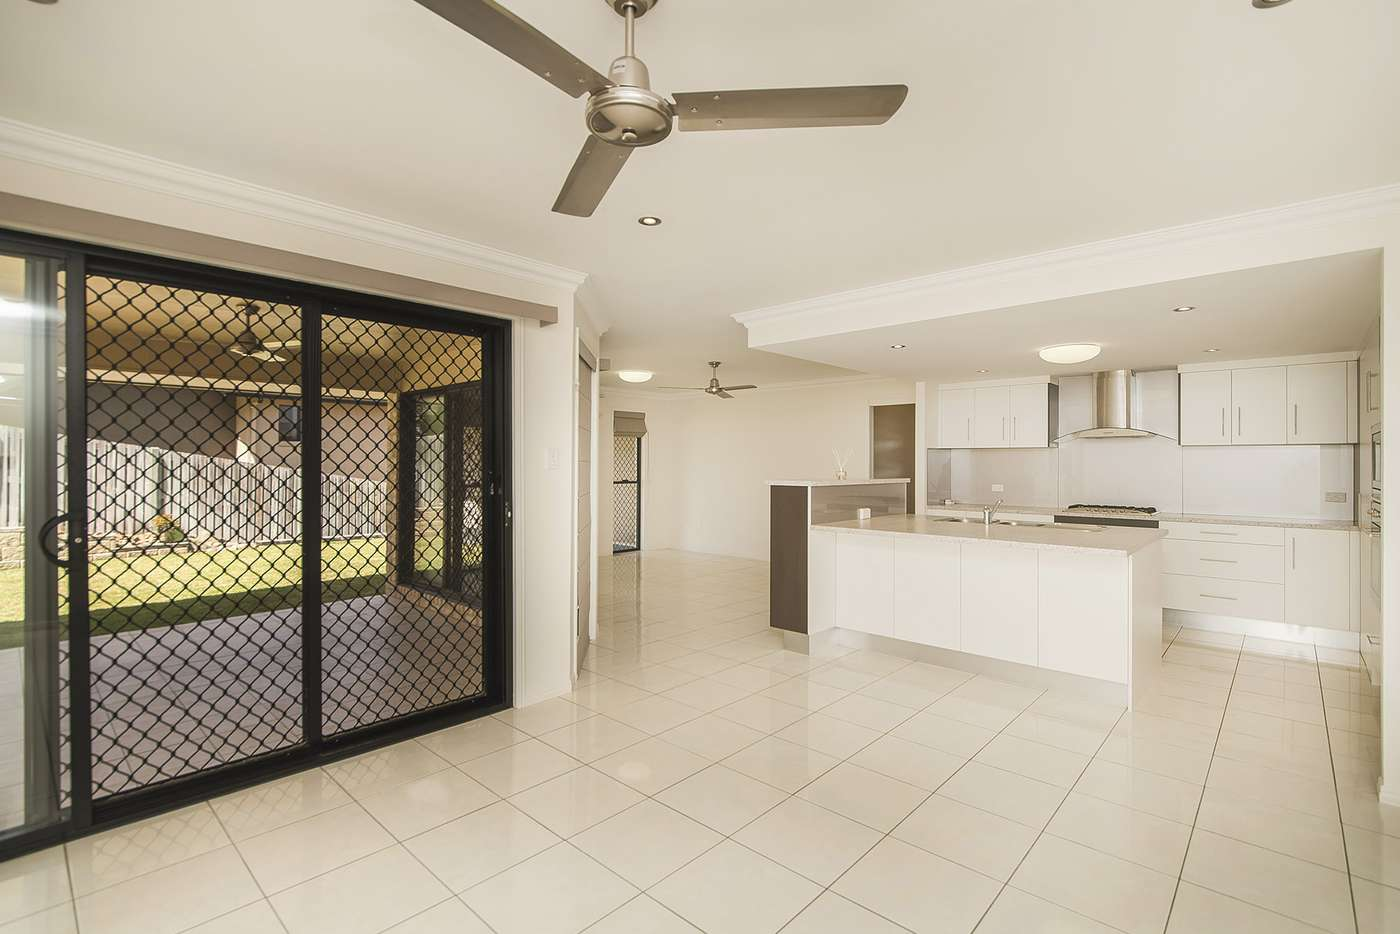 Fifth view of Homely house listing, 15 Haven Close, Norman Gardens QLD 4701